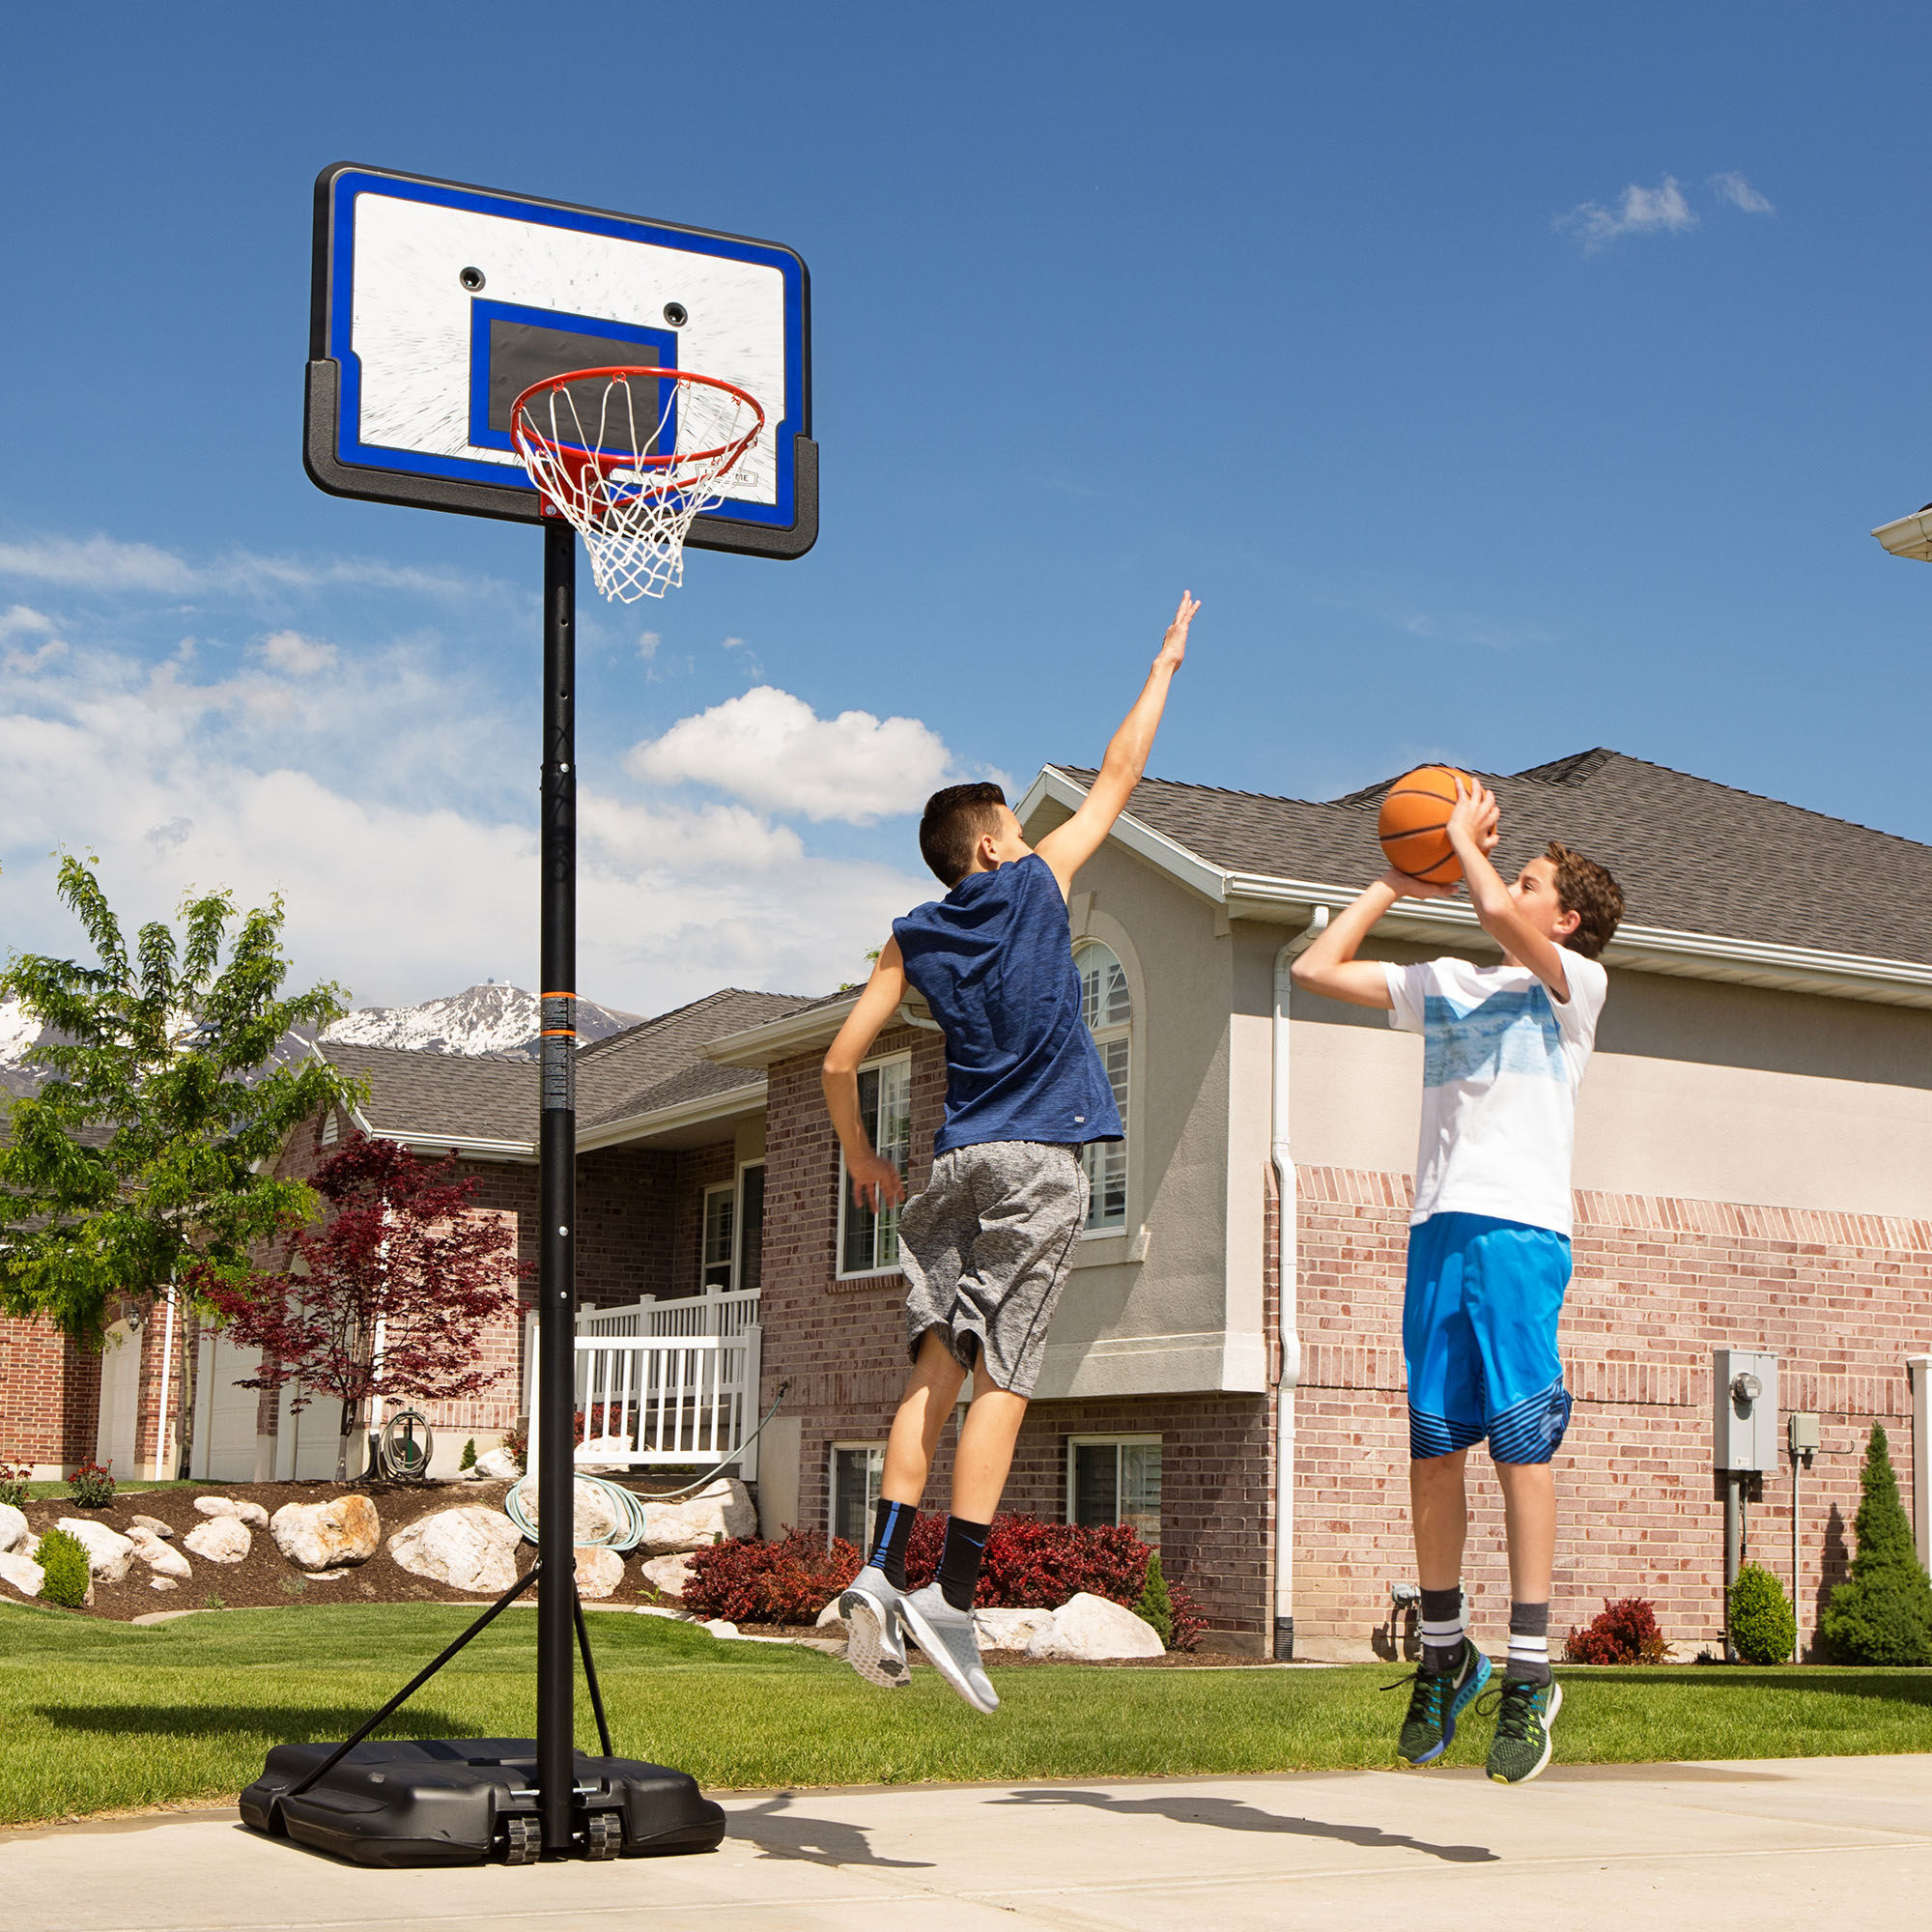 Two players playing basketball with the hoop in front of a house